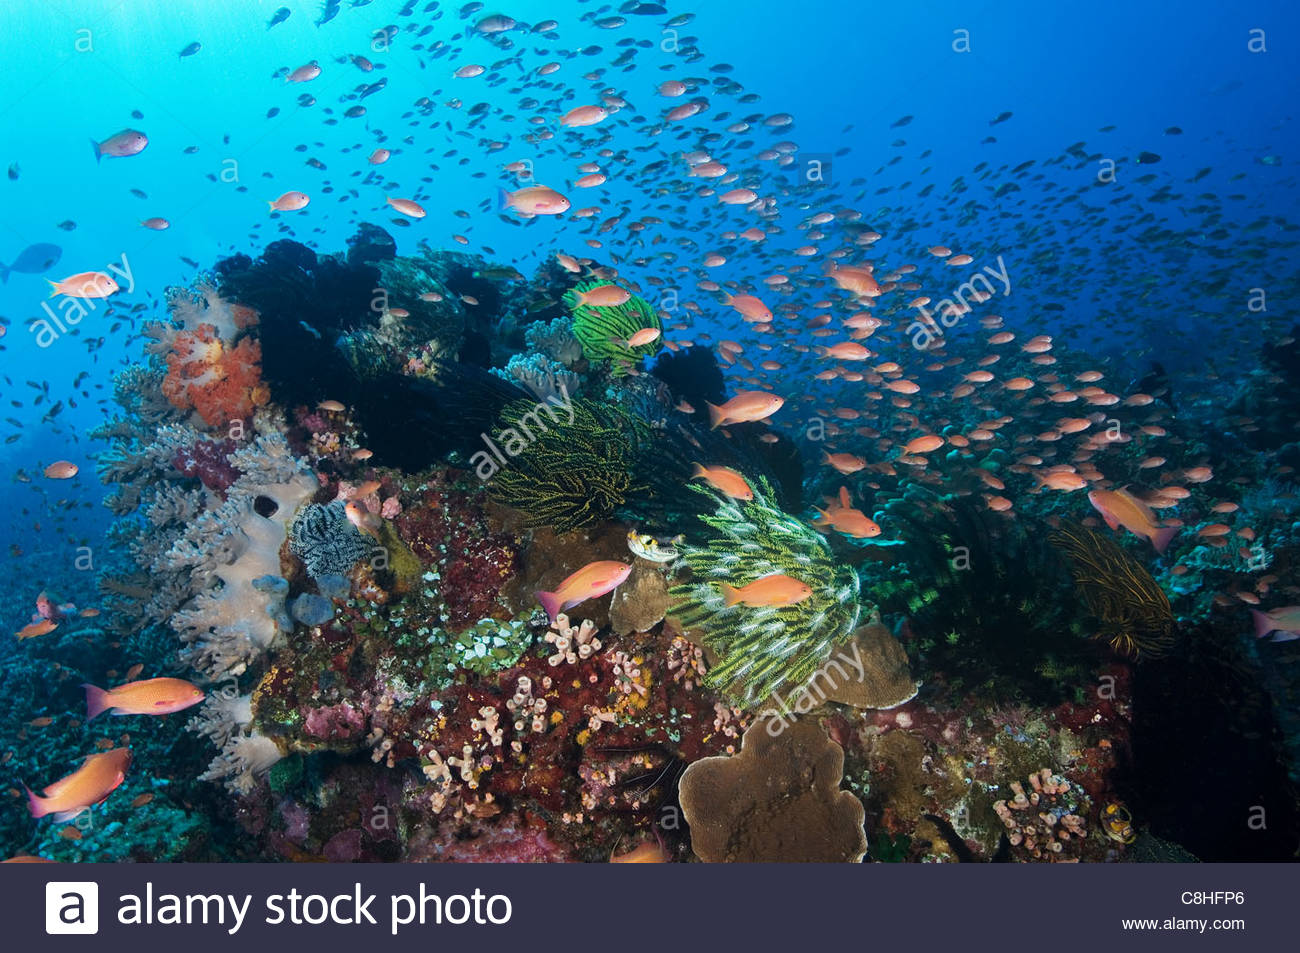 A school of anthias fish feed in a strong current over a reef. - Stock Image